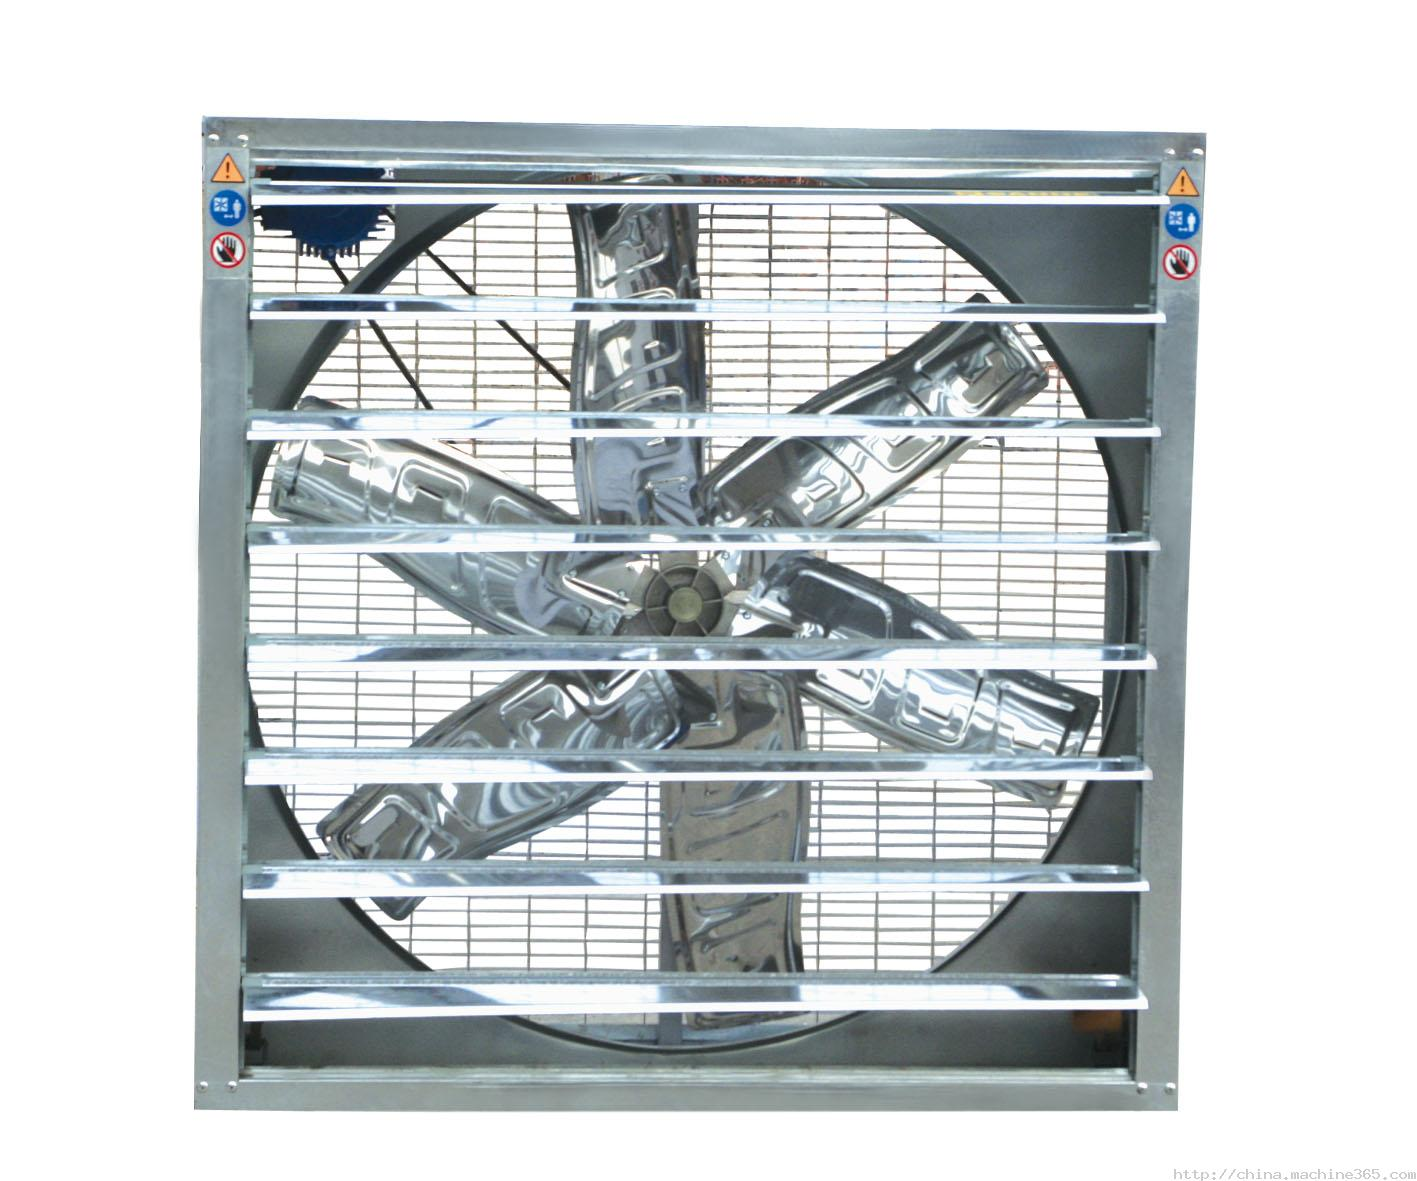 Enclosed area ventilator